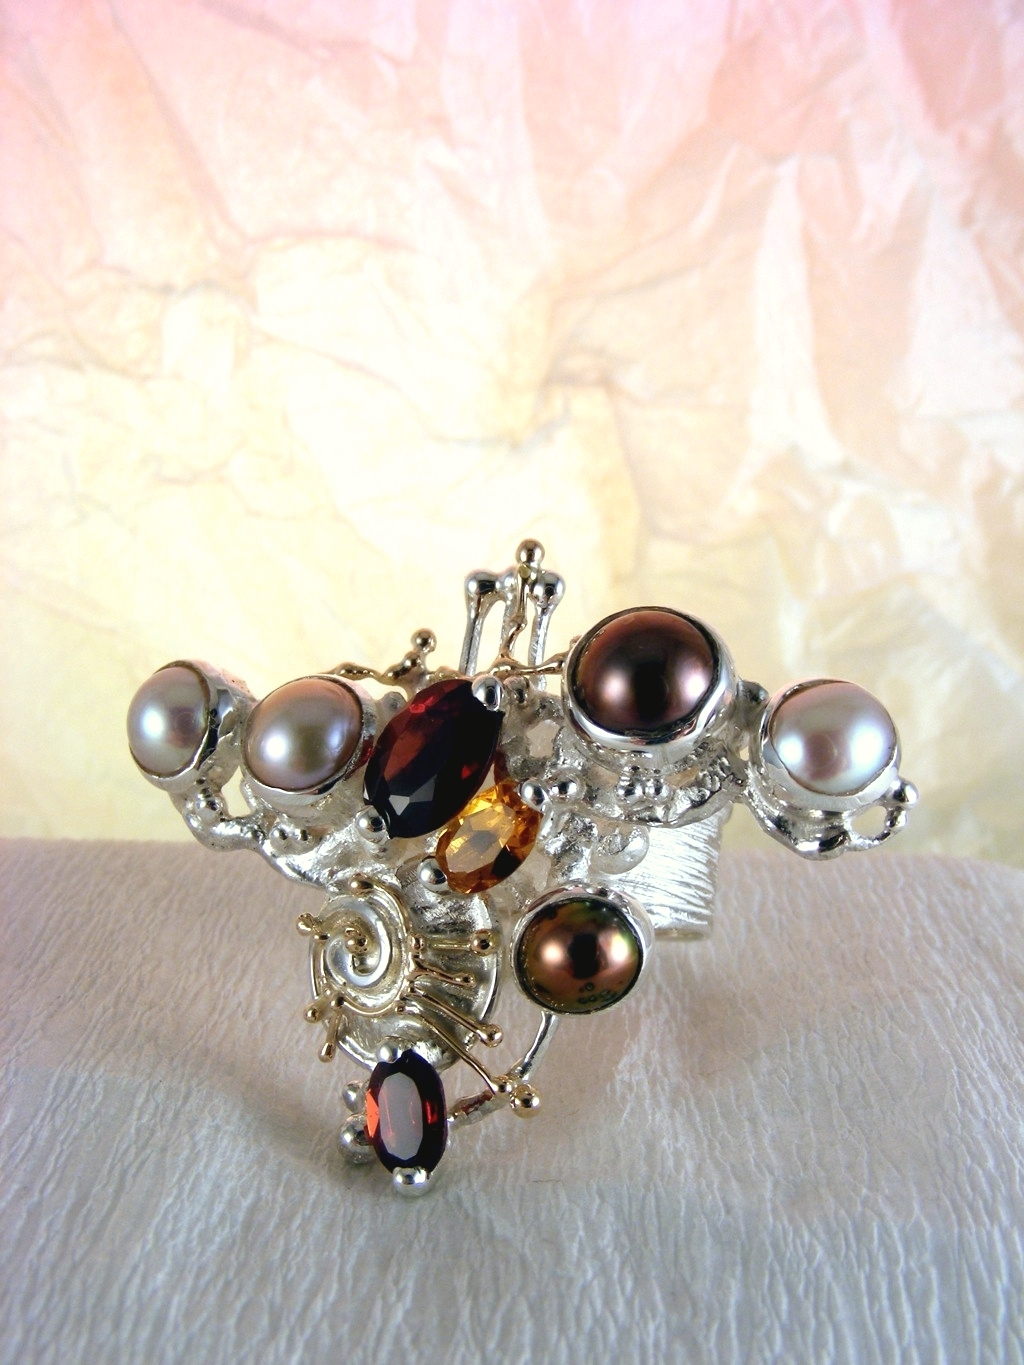 Original Handcrafted, Sterling Silver og Gold, Citrine, Garnet Pearl, Ring with Citrine and Garnet #3627